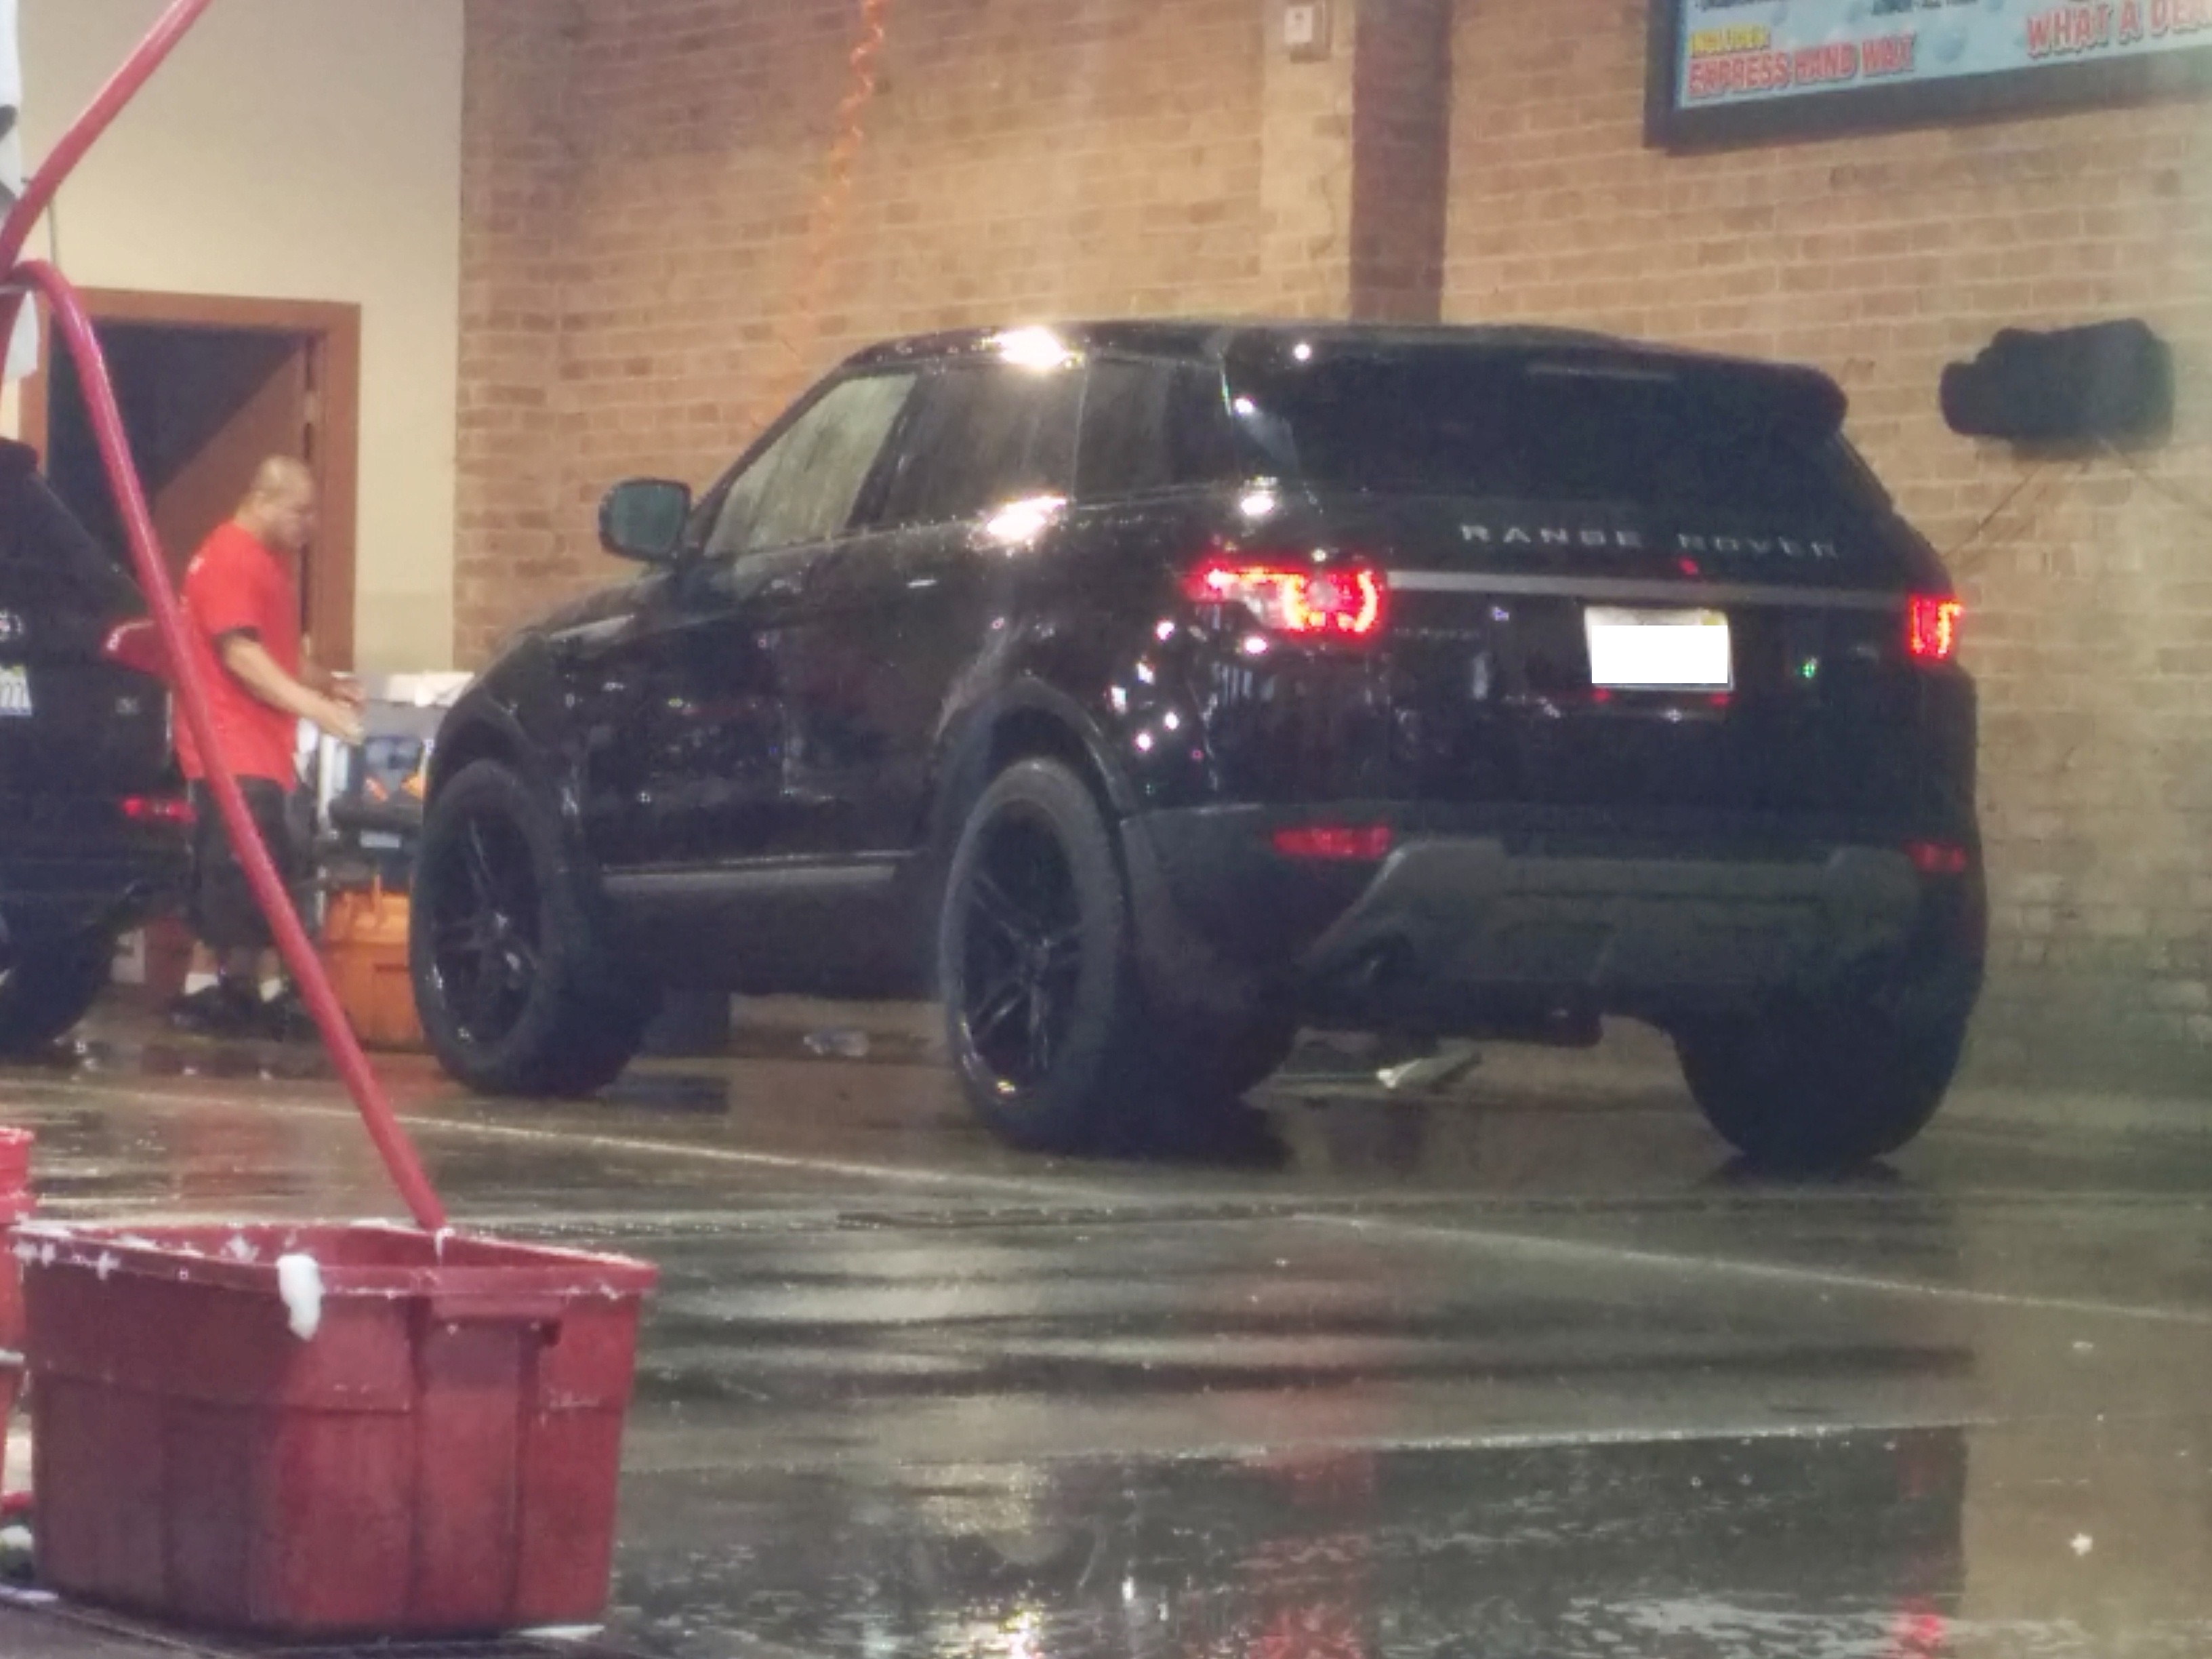 FOR SALE range rover evoque 20inch Wheels and Tires $1600